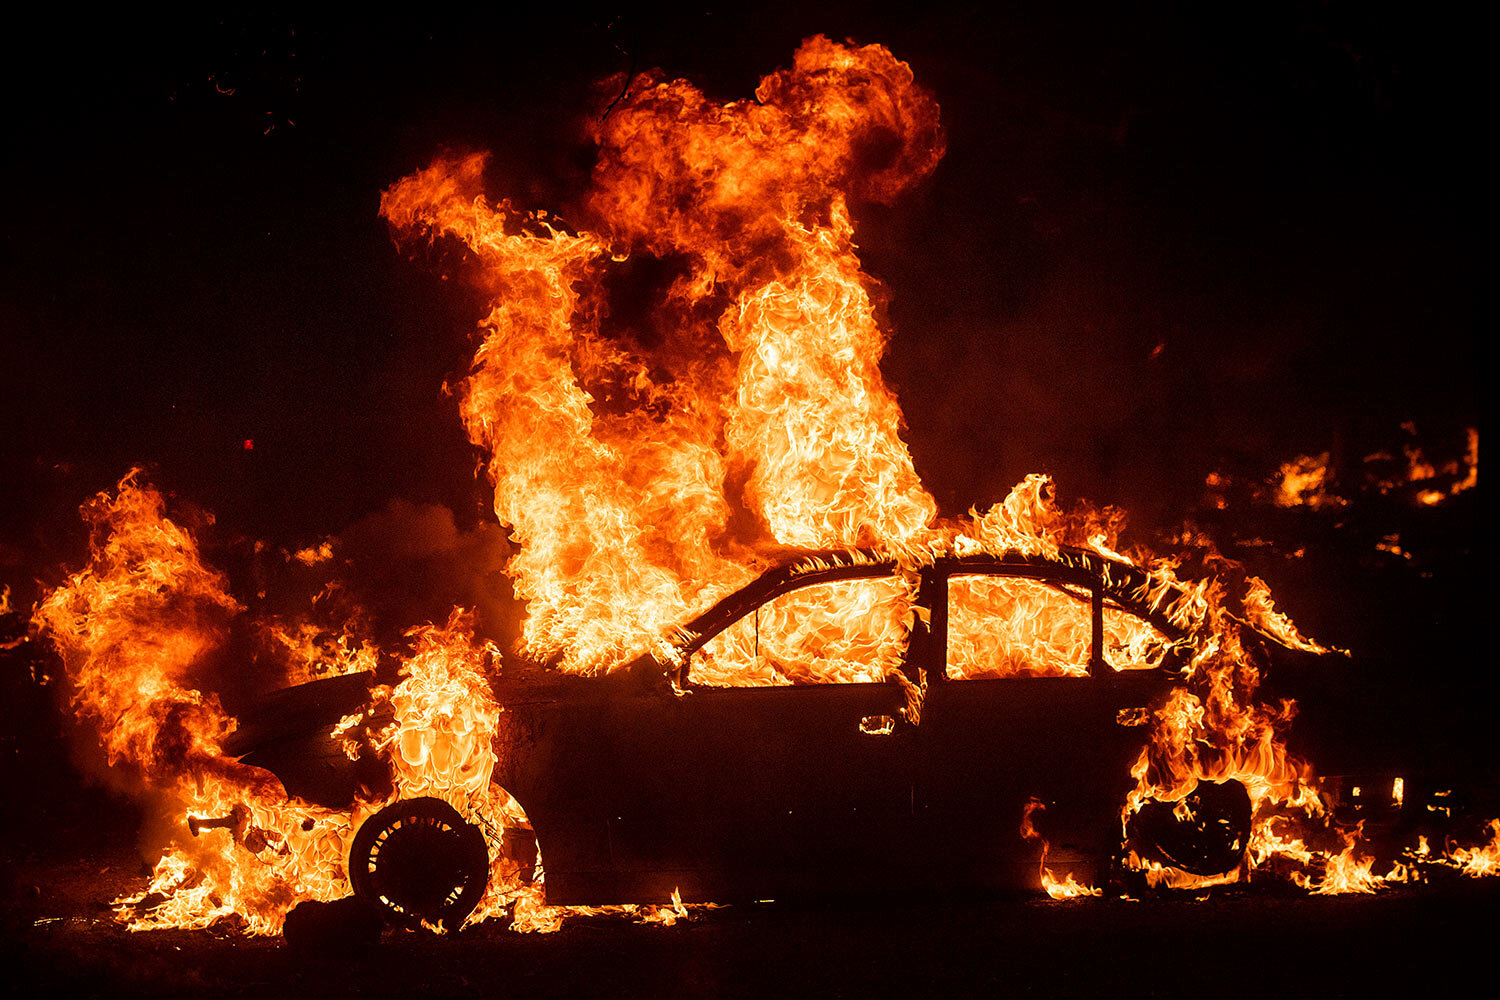 Flames from the Kincade Fire consume a car in the Jimtown community of unincorporated Sonoma County, Calif., on Thursday, Oct. 24, 2019. Wildfires are growing deadlier and more destructive amid climate change. (AP Photo/Noah Berger)